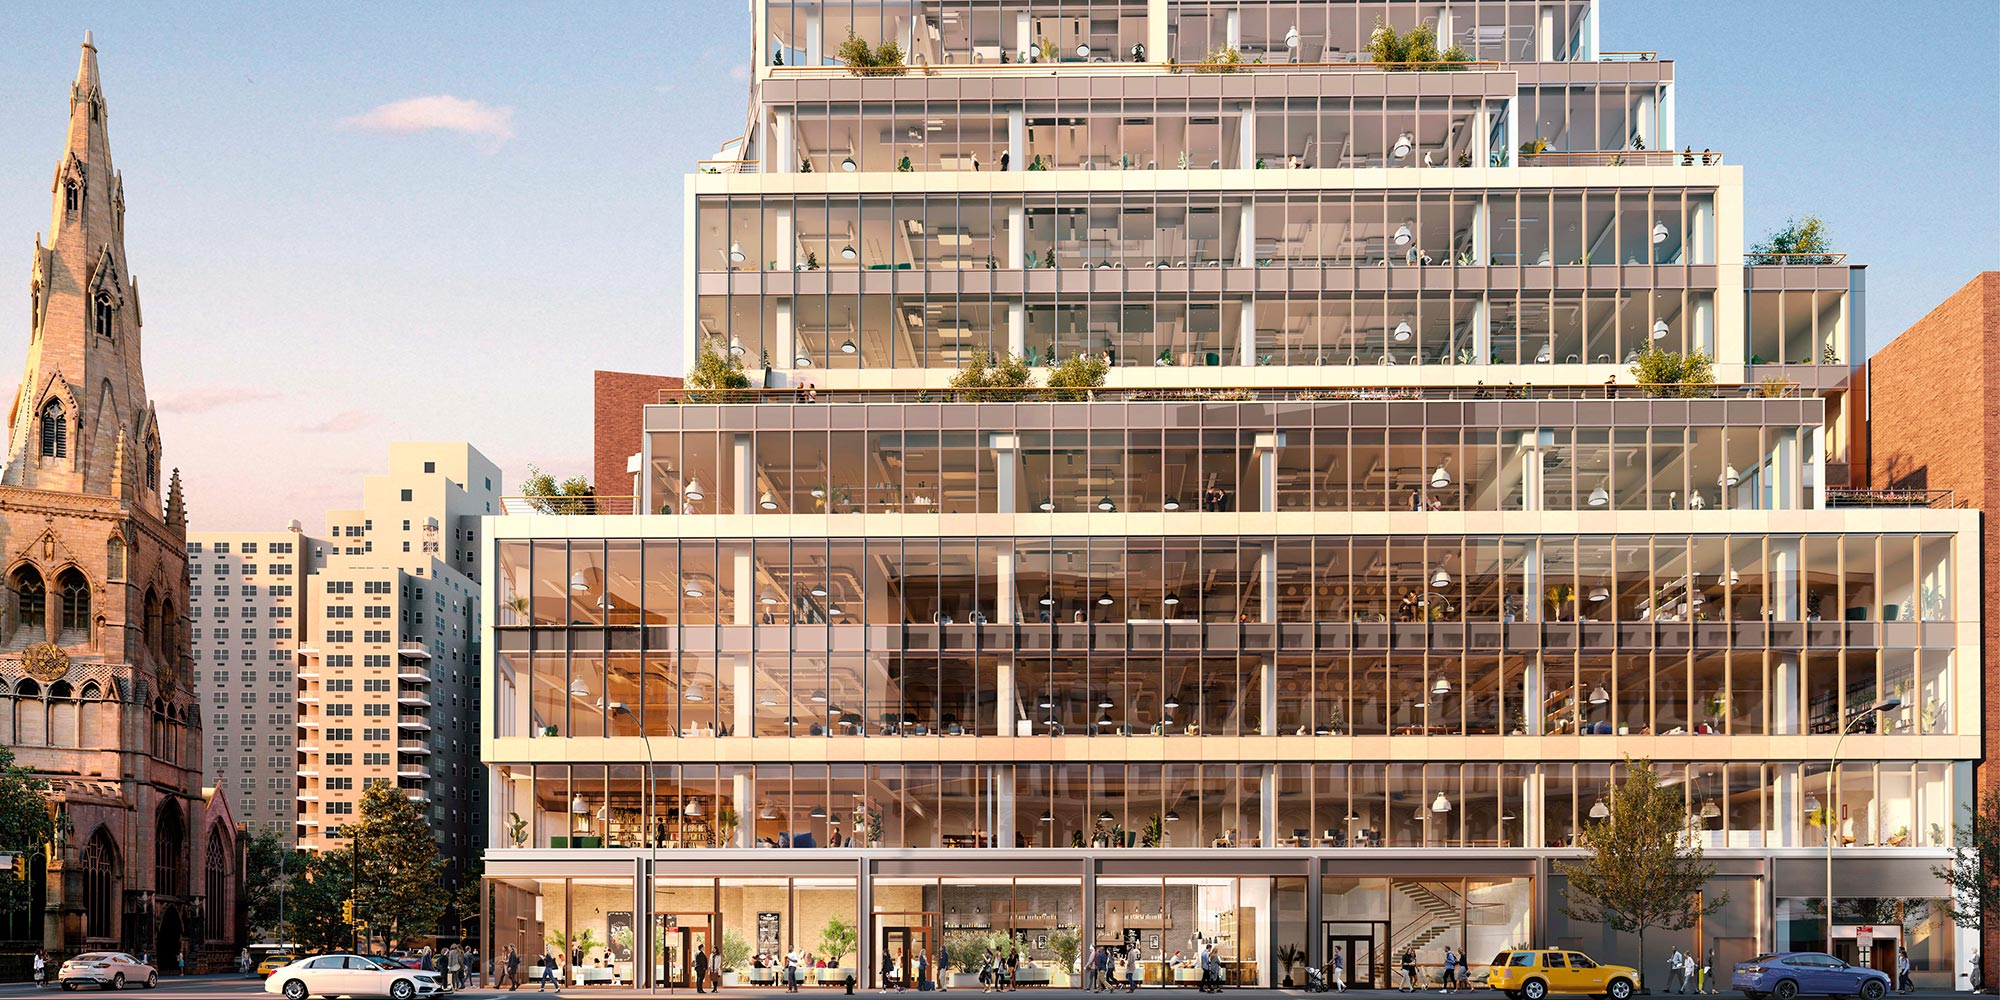 799 Broadway is the newest building in the coolest NYC neighborhood.